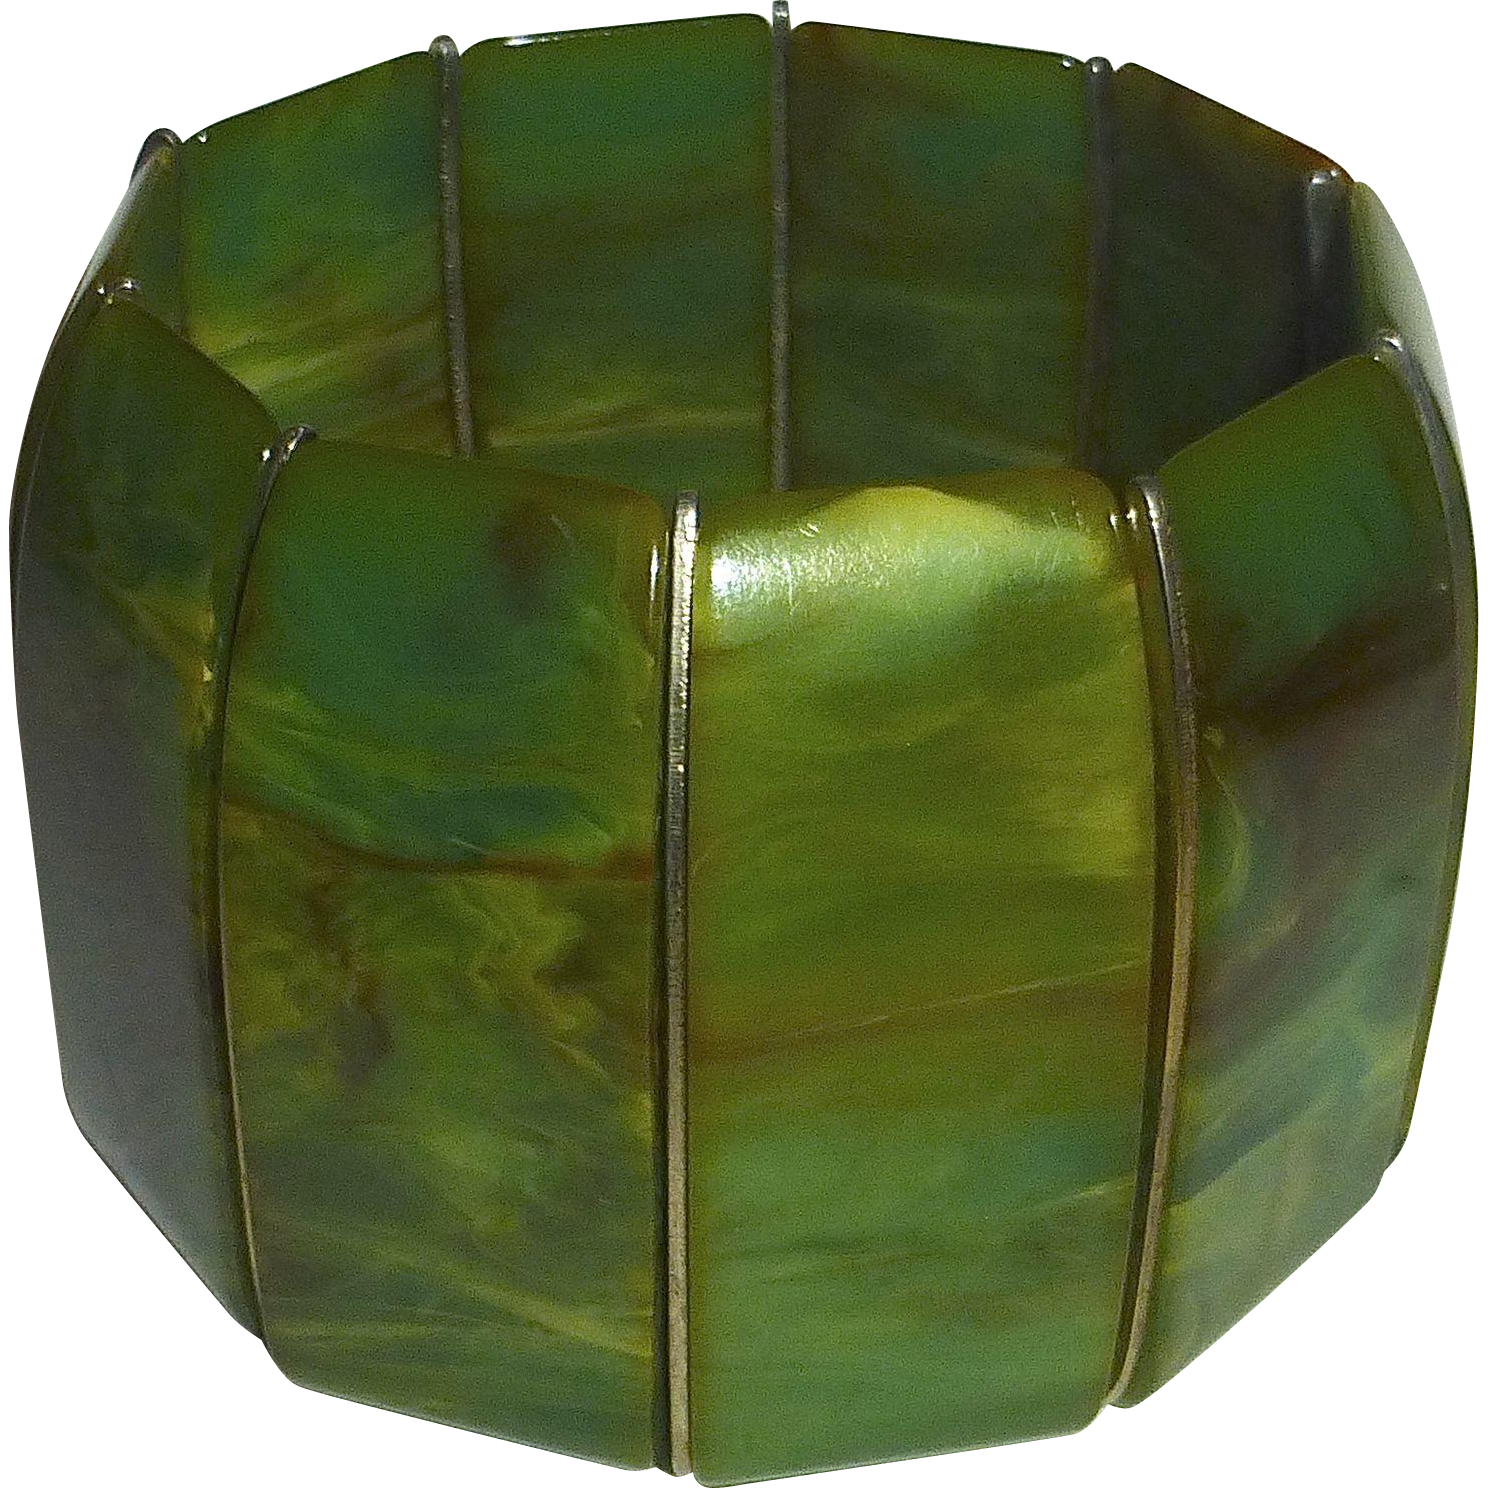 End-of-Day Green Swirl Bakelite X Wide Stretch Bracelet